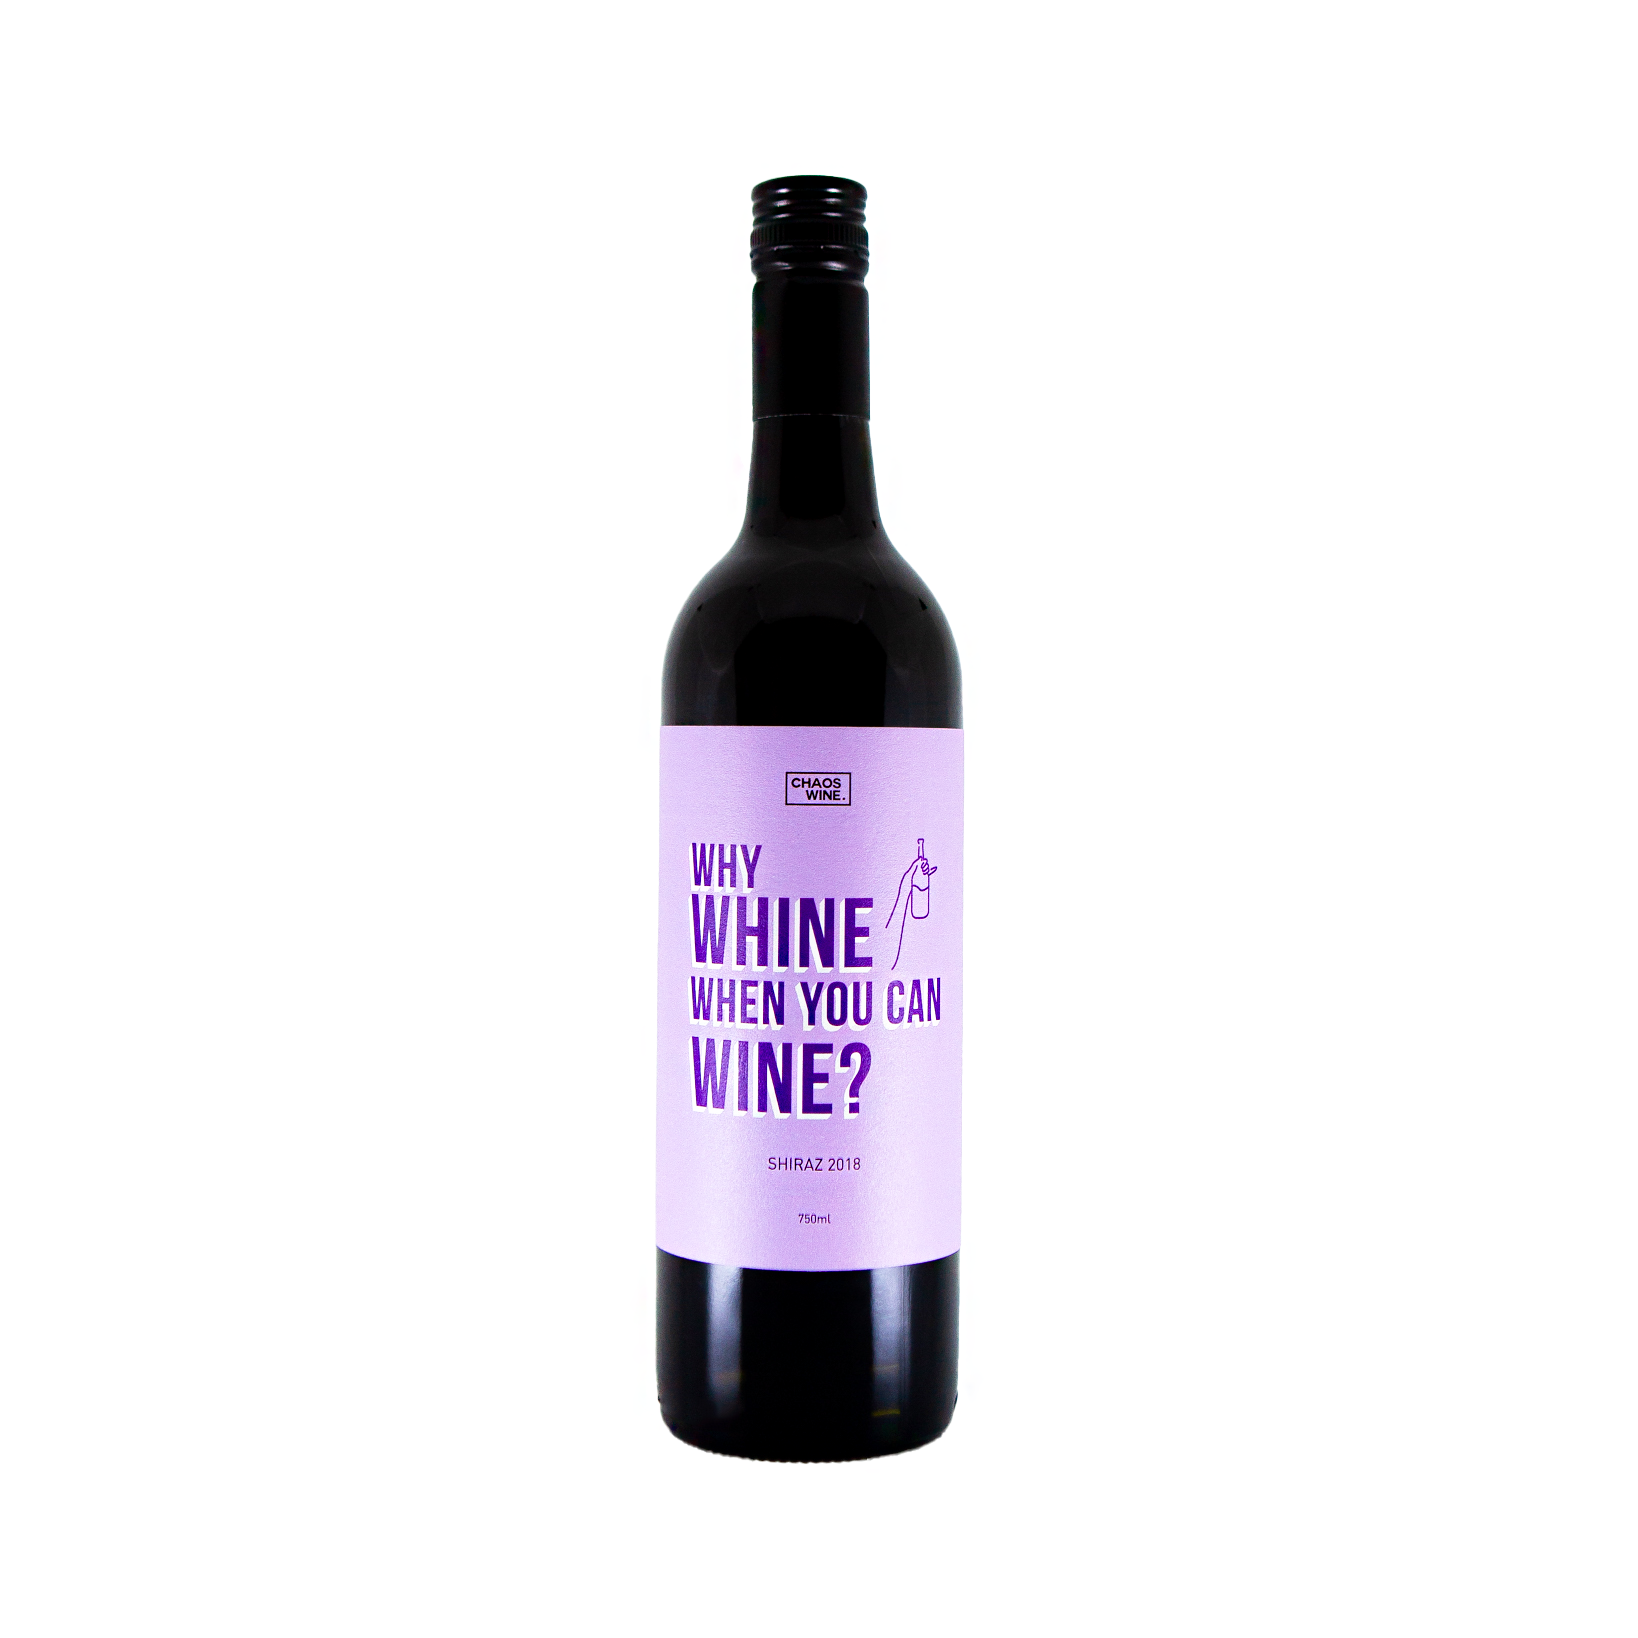 why wine when you can wine Shiraz